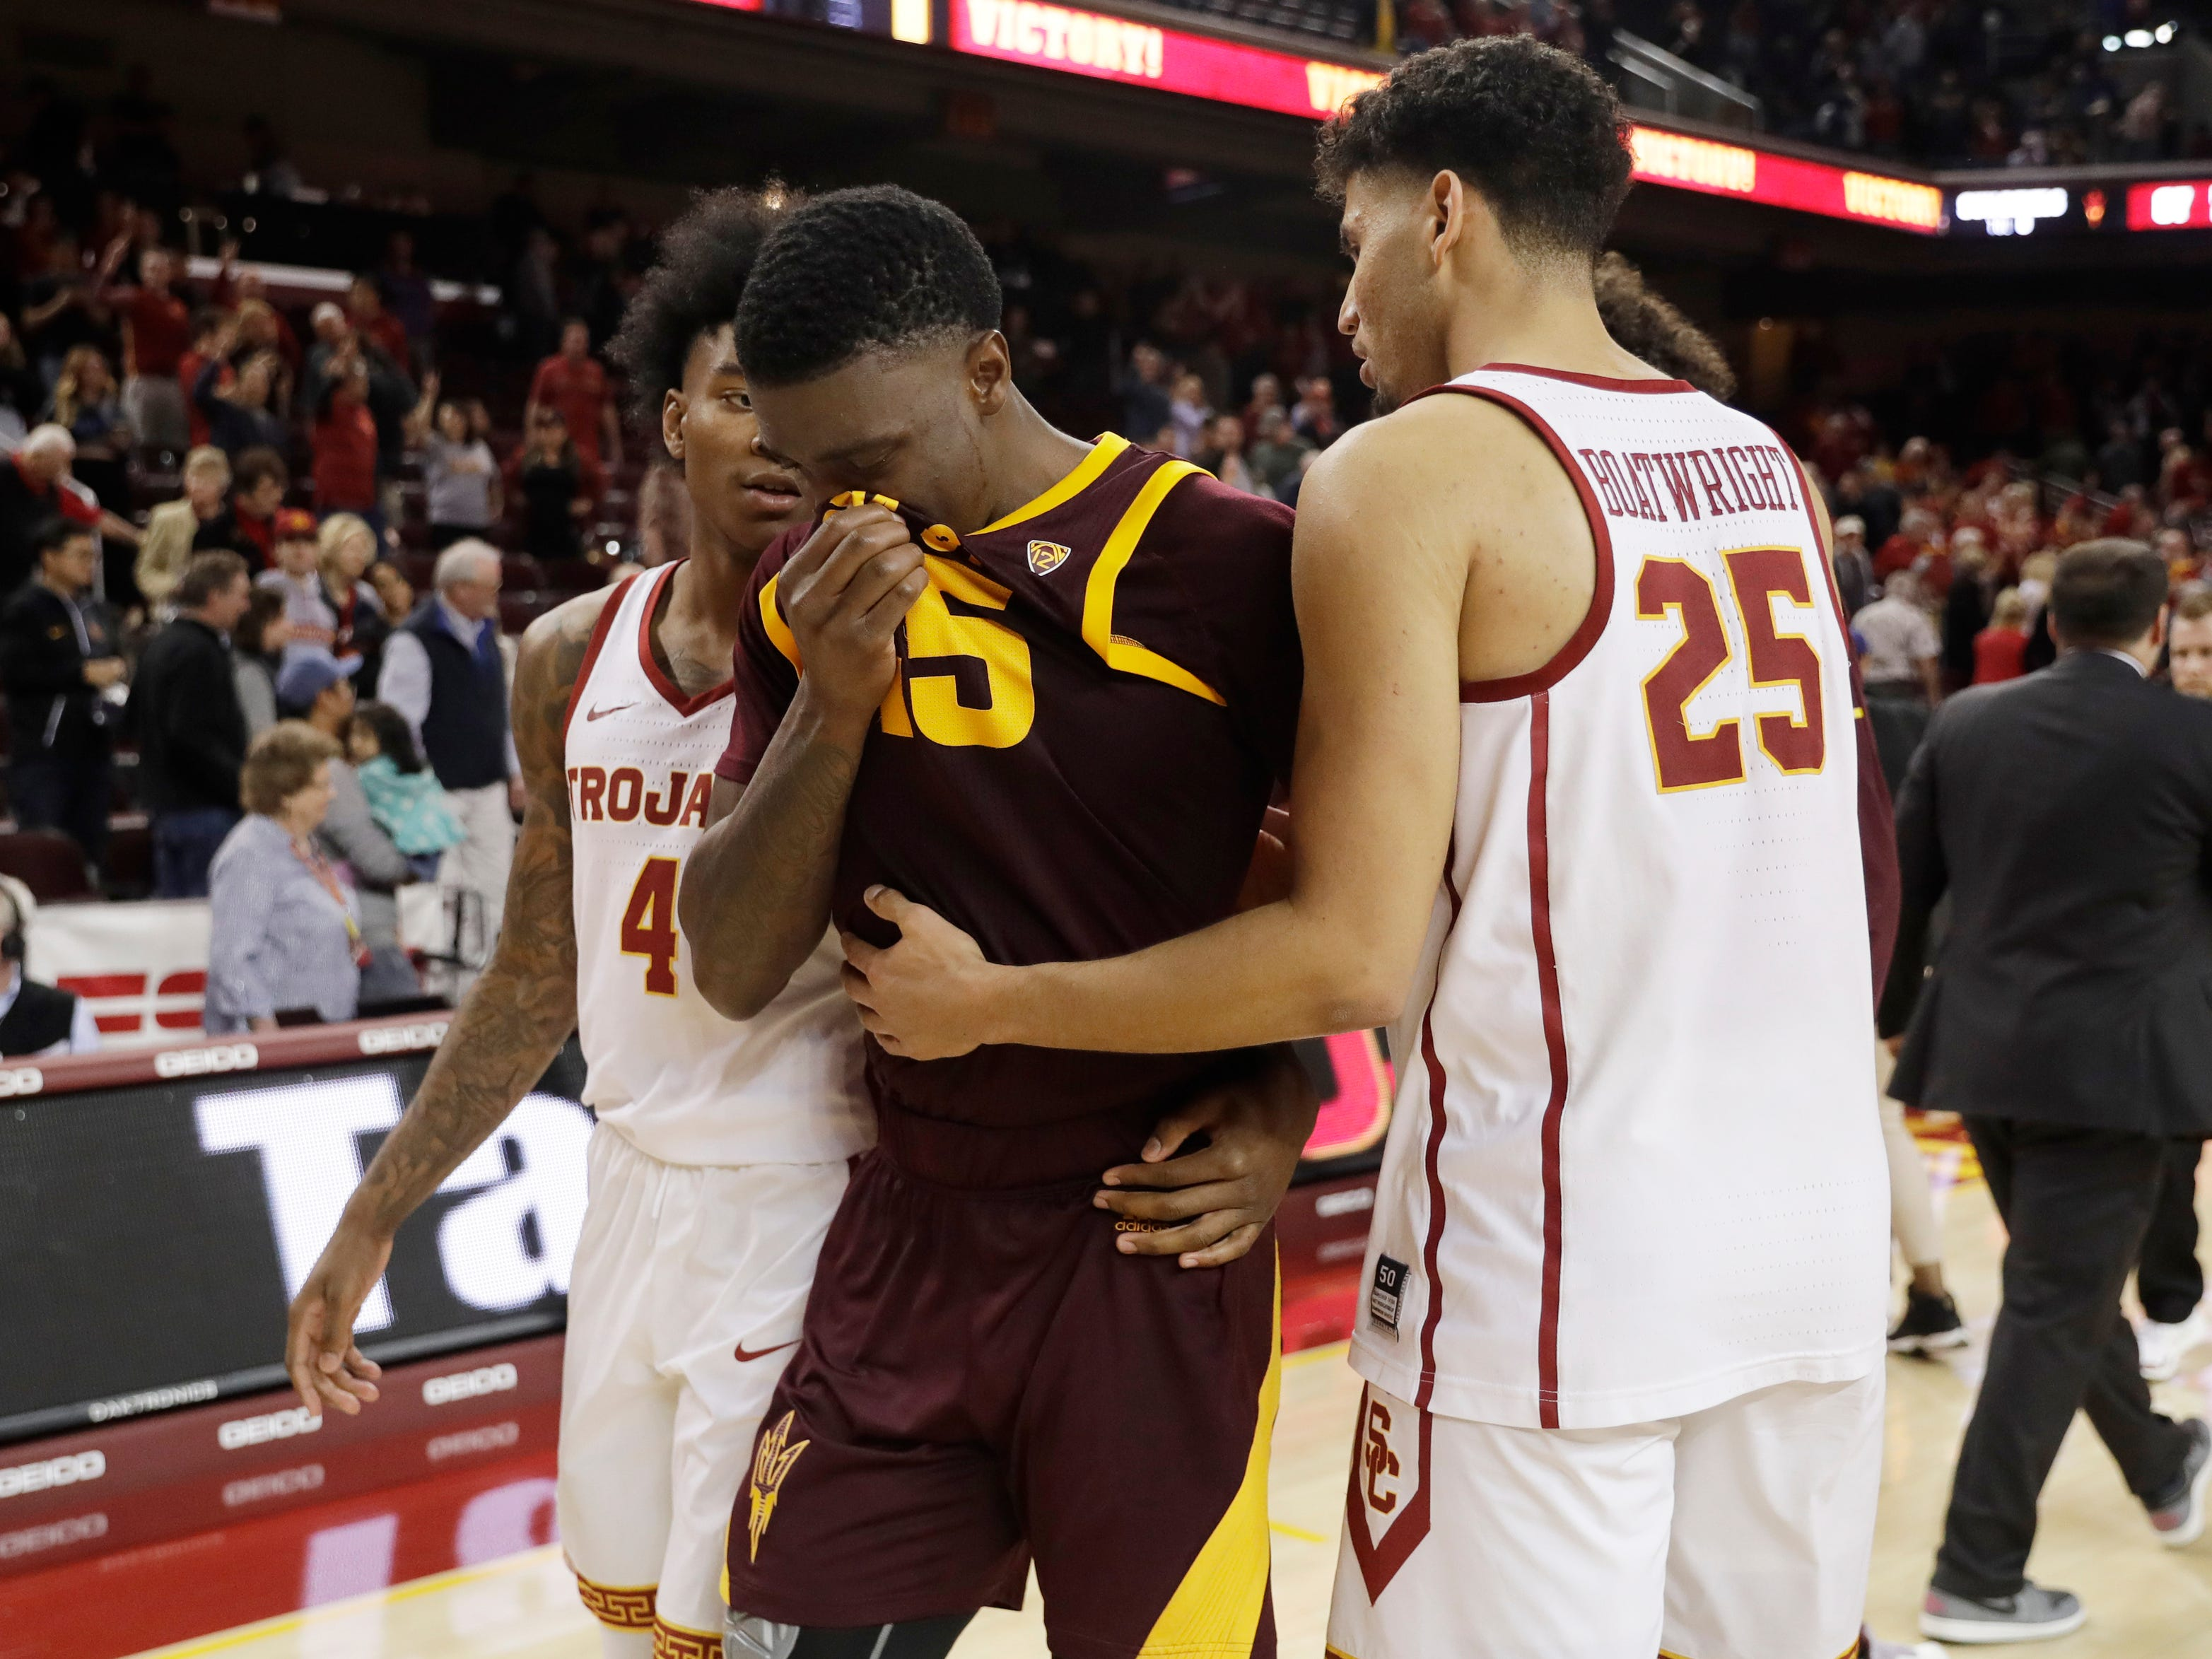 Arizona State forward Zylan Cheatham, center, is consoled by Southern California's Bennie Boatwright, right, and Kevin Porter Jr. (4) after Southern California's win during an NCAA college basketball game Saturday, Jan. 26, 2019, in Los Angeles.